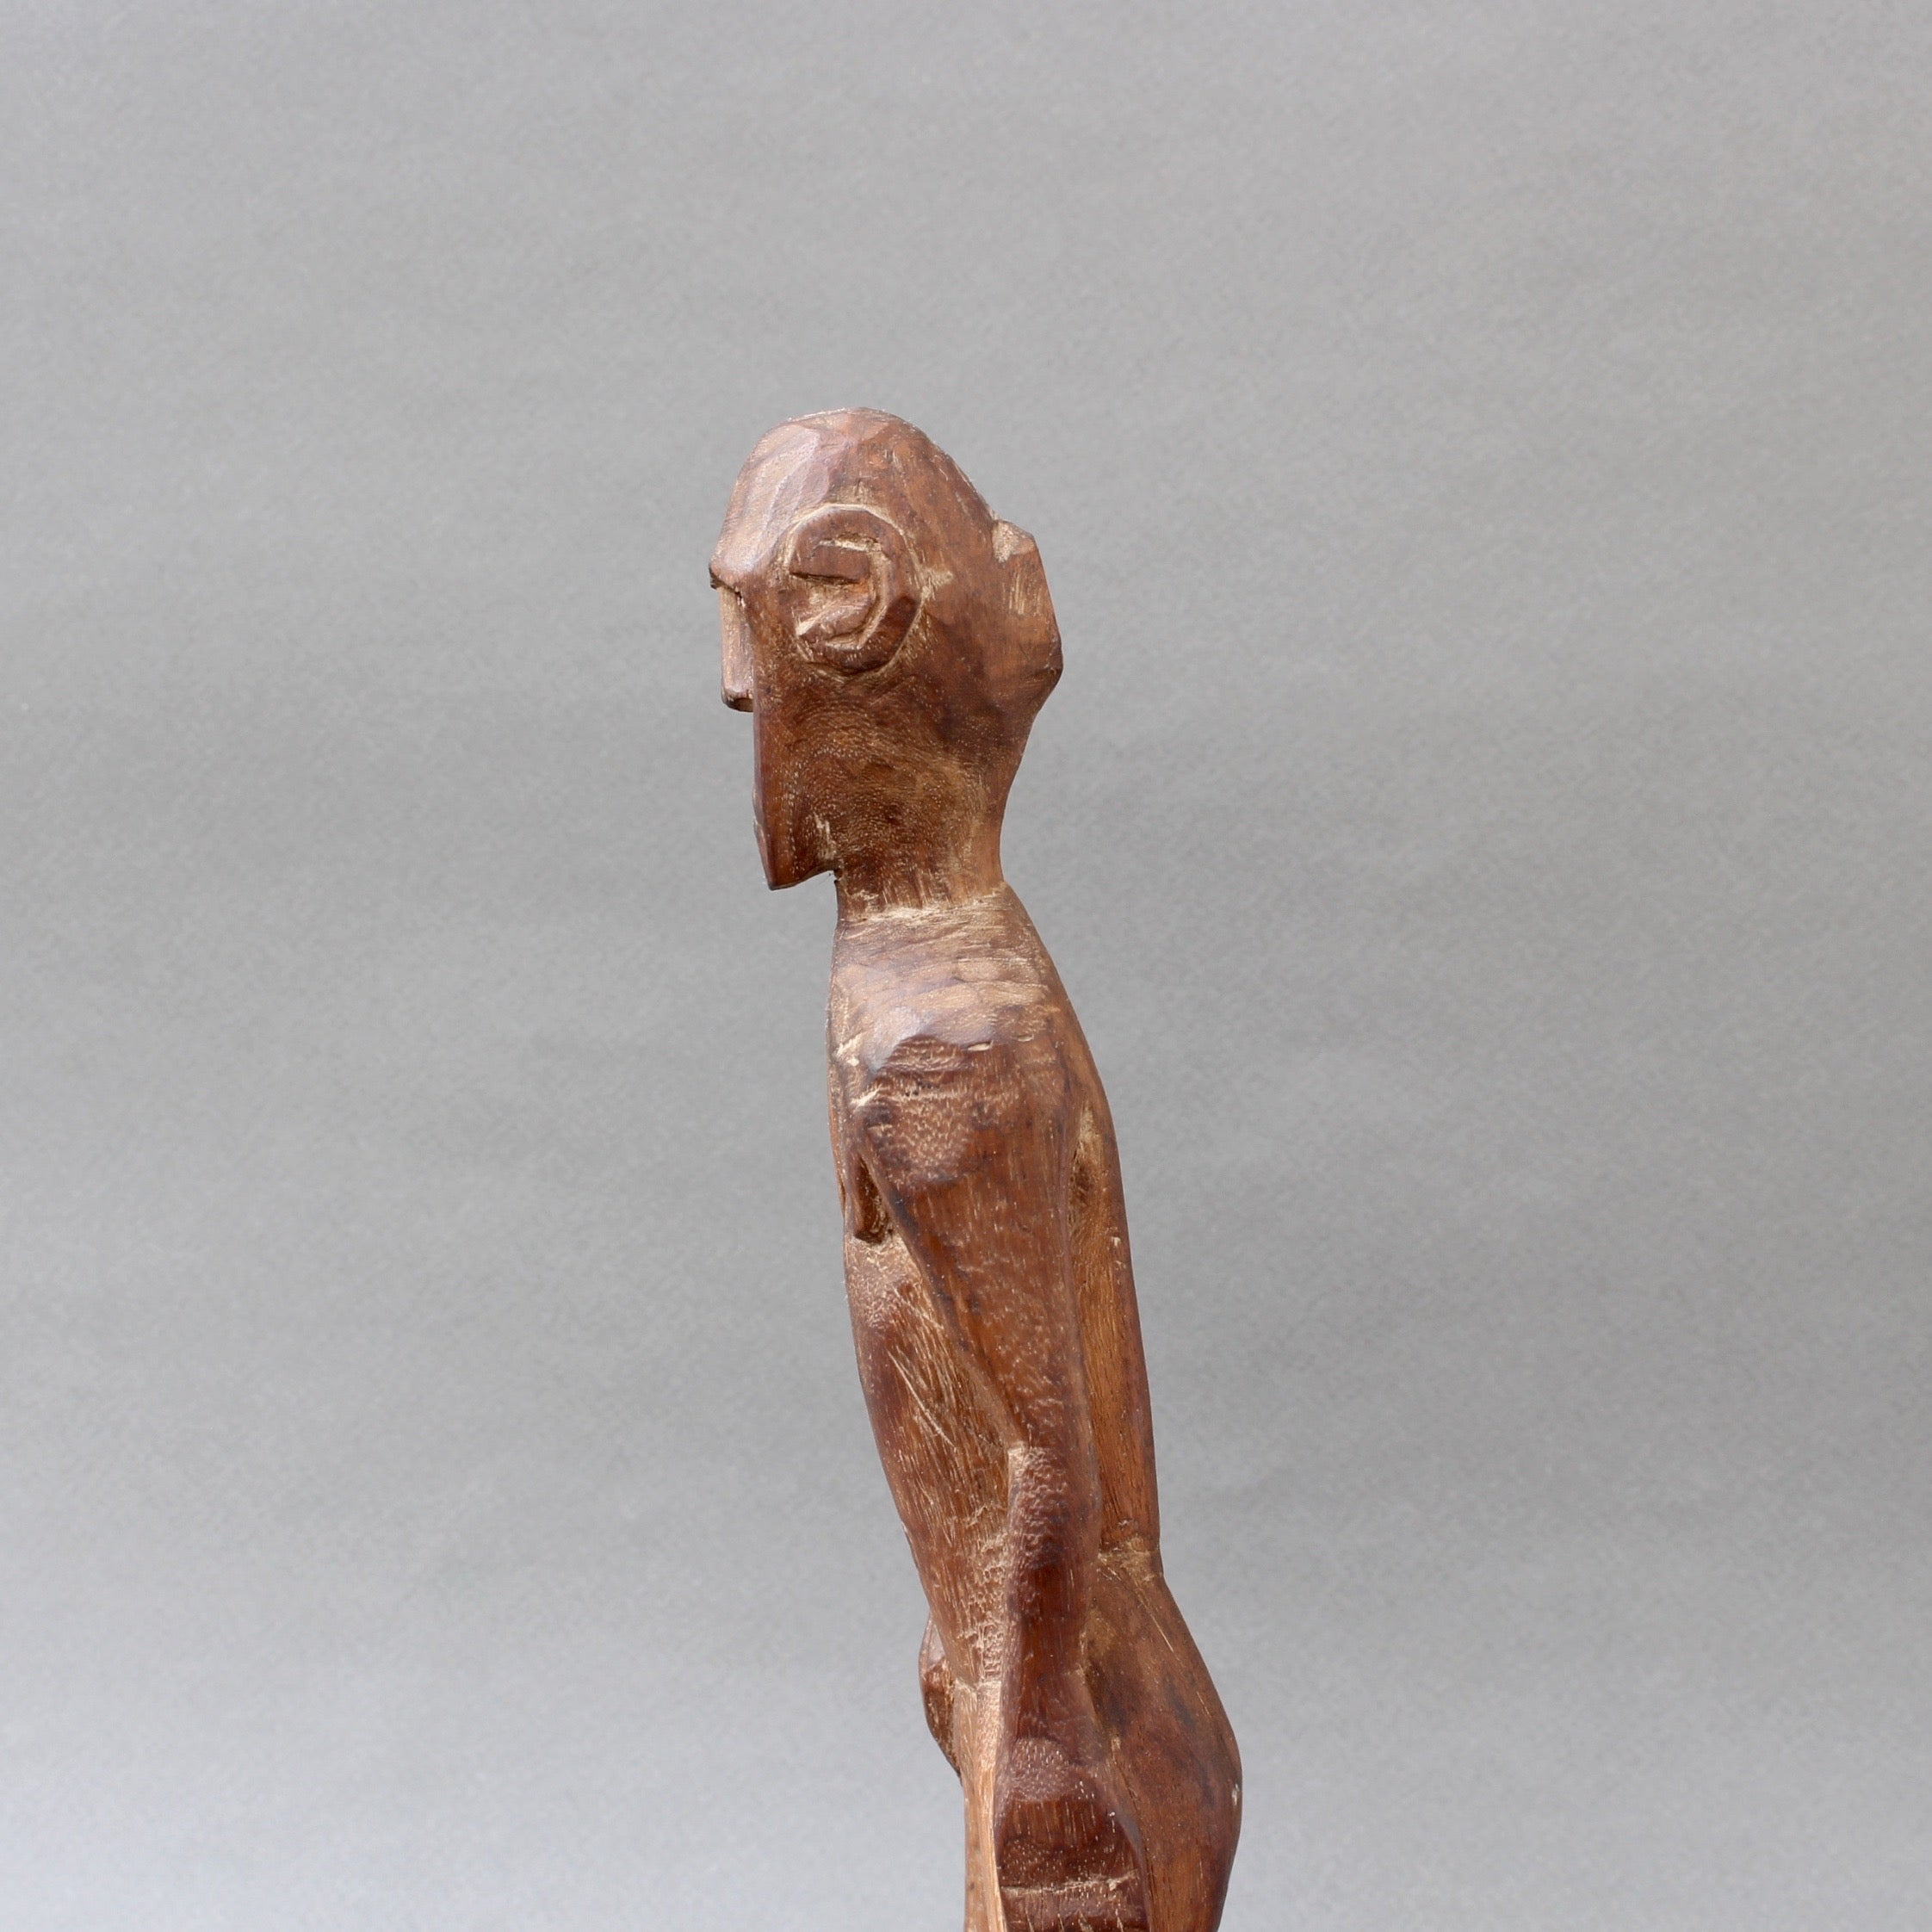 Wooden Sculpture / Carving of Standing Figure from Sumba Island, Indonesia (circa 1960s - 1970s)